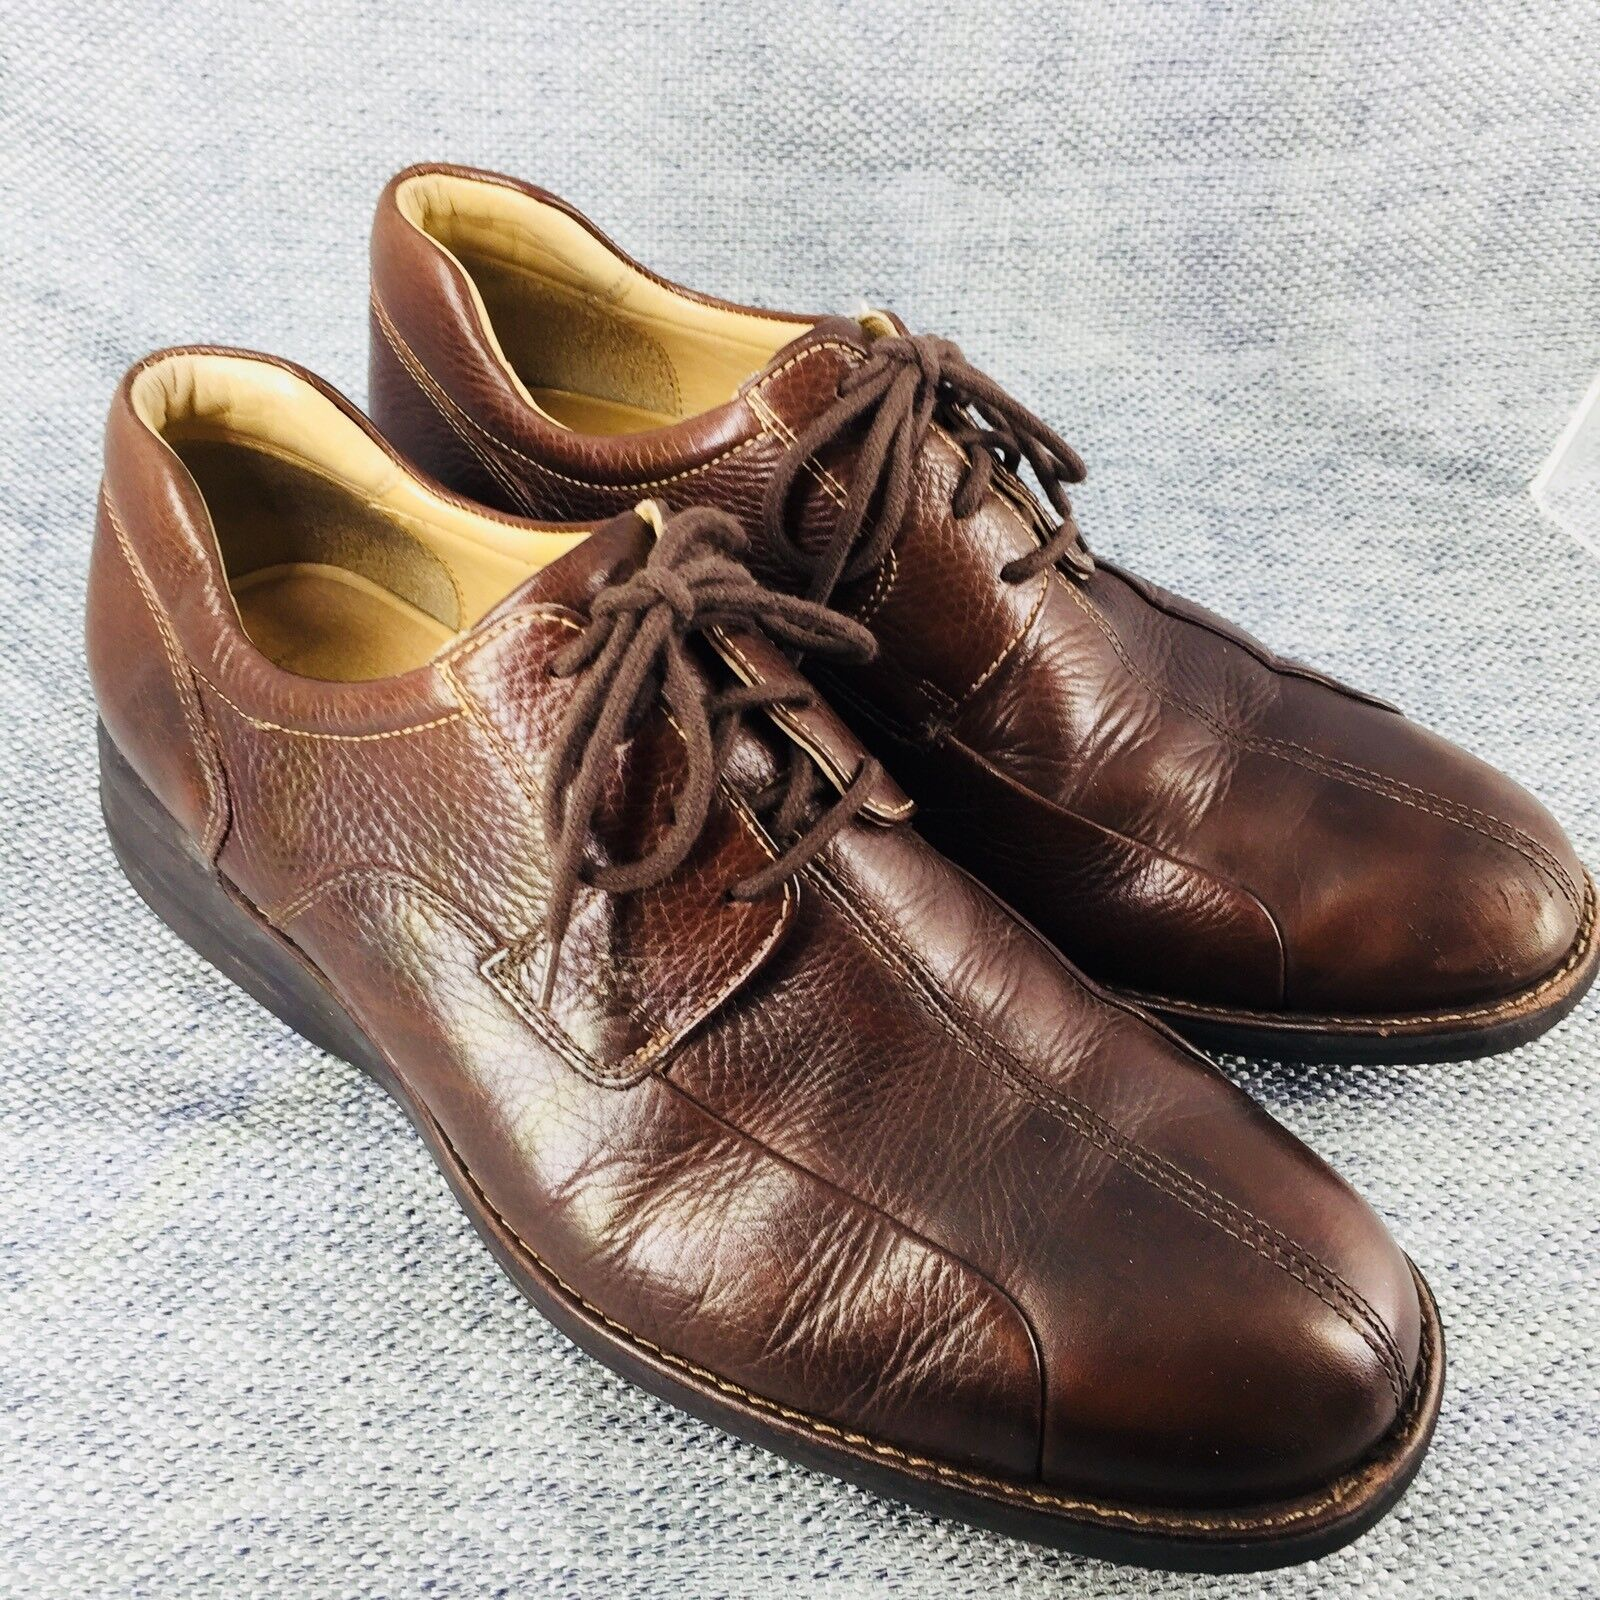 Johnston & Murphy Brown Lace Up Leather Derby Oxfords shoes Men's Size  11 M